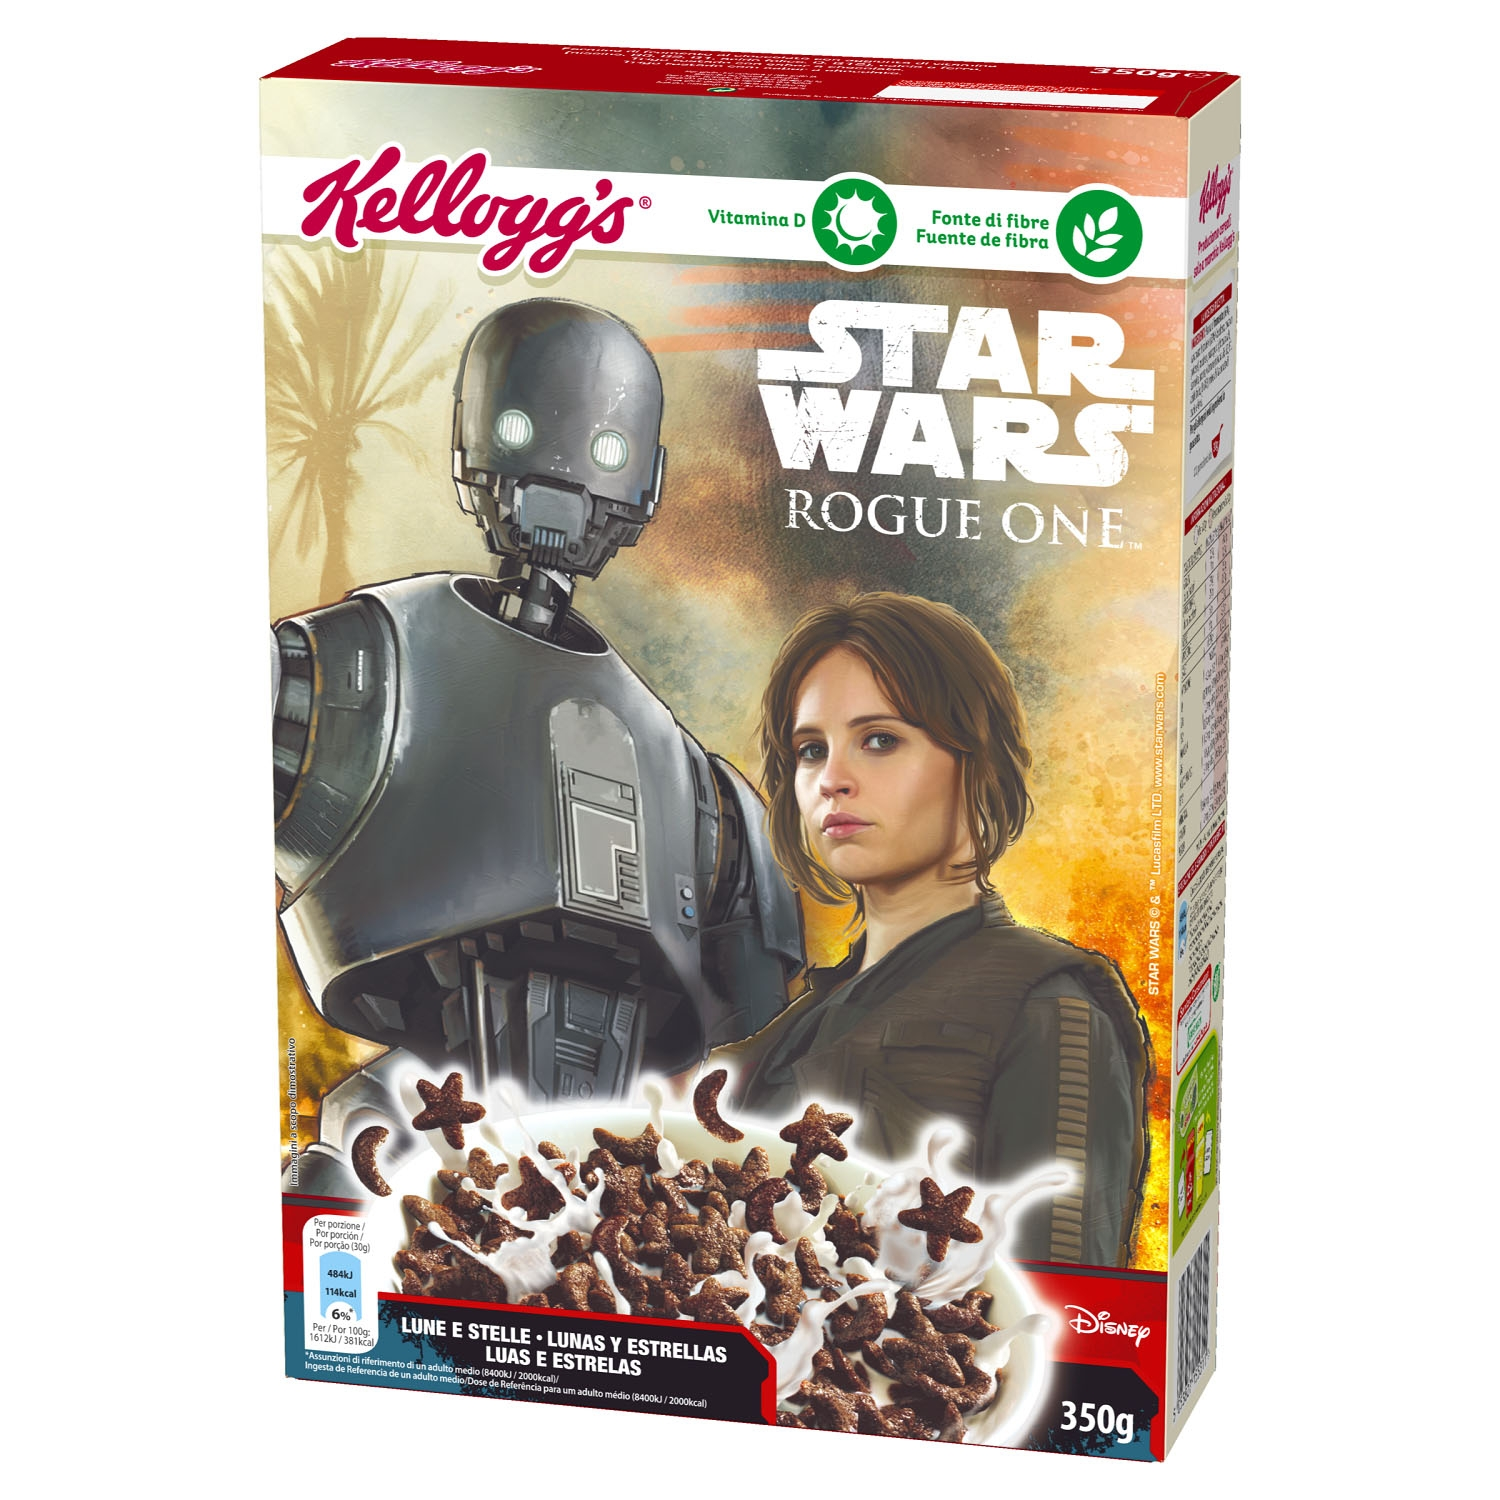 Cereales de chocolate especial Star Wars